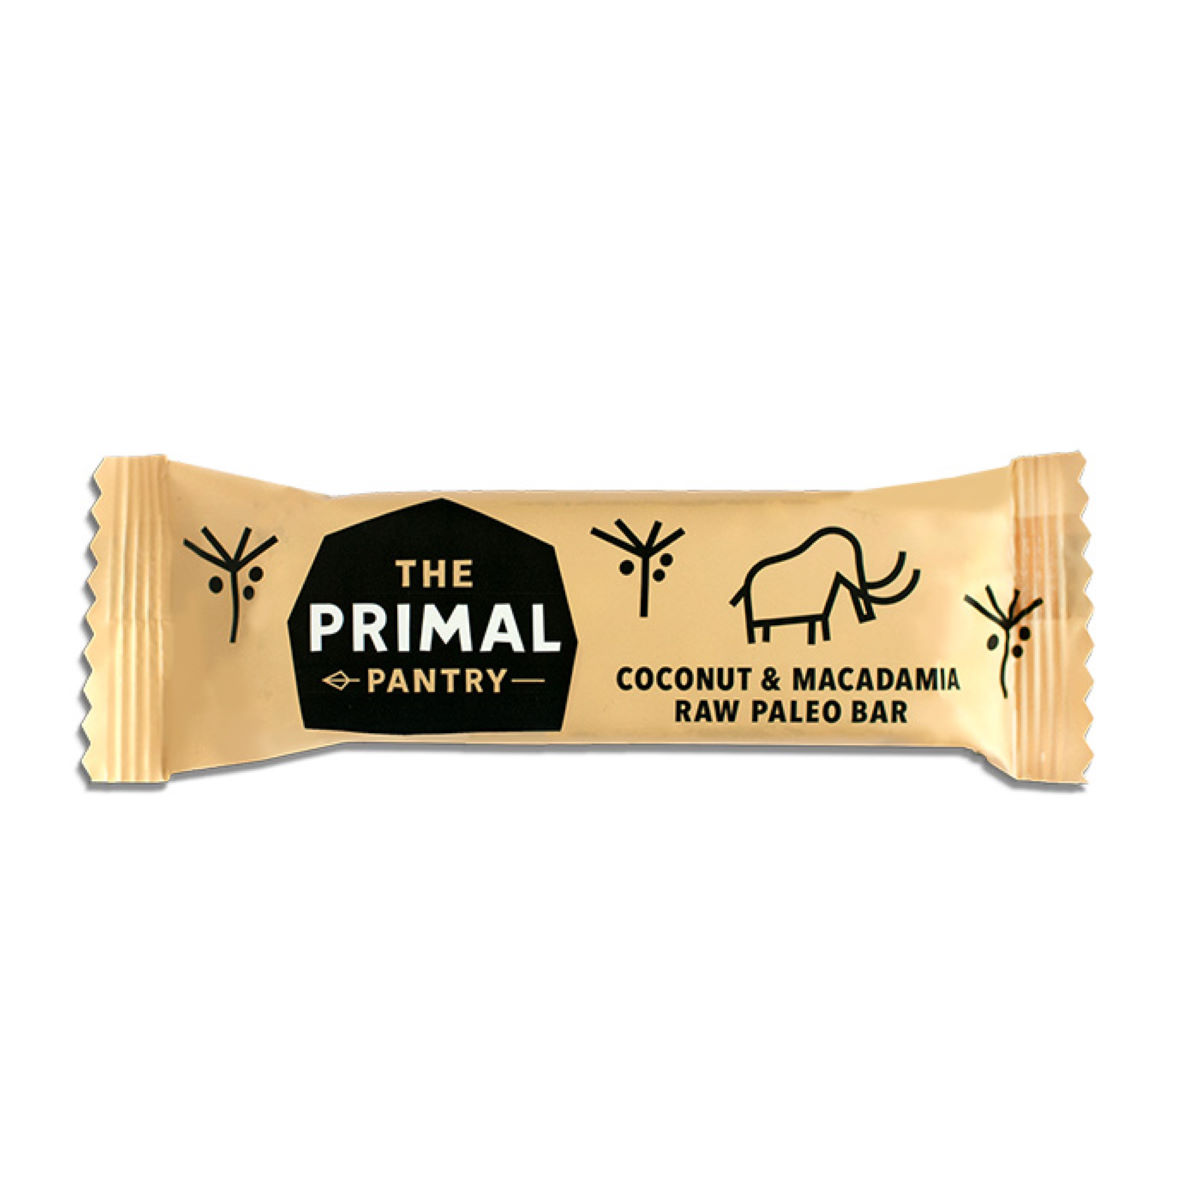 Image of Barres The Primal Pantry Raw Paleo - 41-60g Coconut | Barres